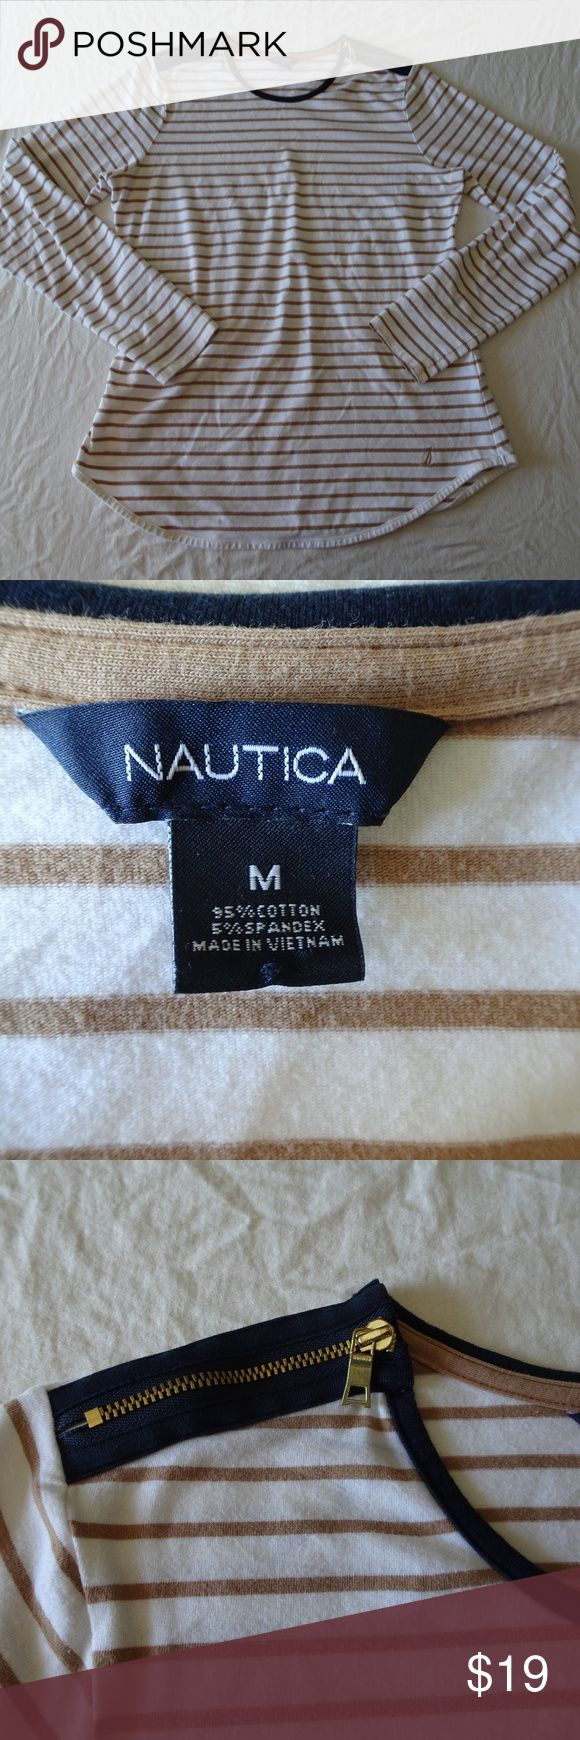 """Nautica Long Sleeve Striped Top with Zipper Detail Excellent condition. White / camel stripes with blue and brass zipper detail on shoulder Lightweight Across at armpit 17"""" Length approx. 25""""  All items come from a non-smoking home! Nautica Tops"""